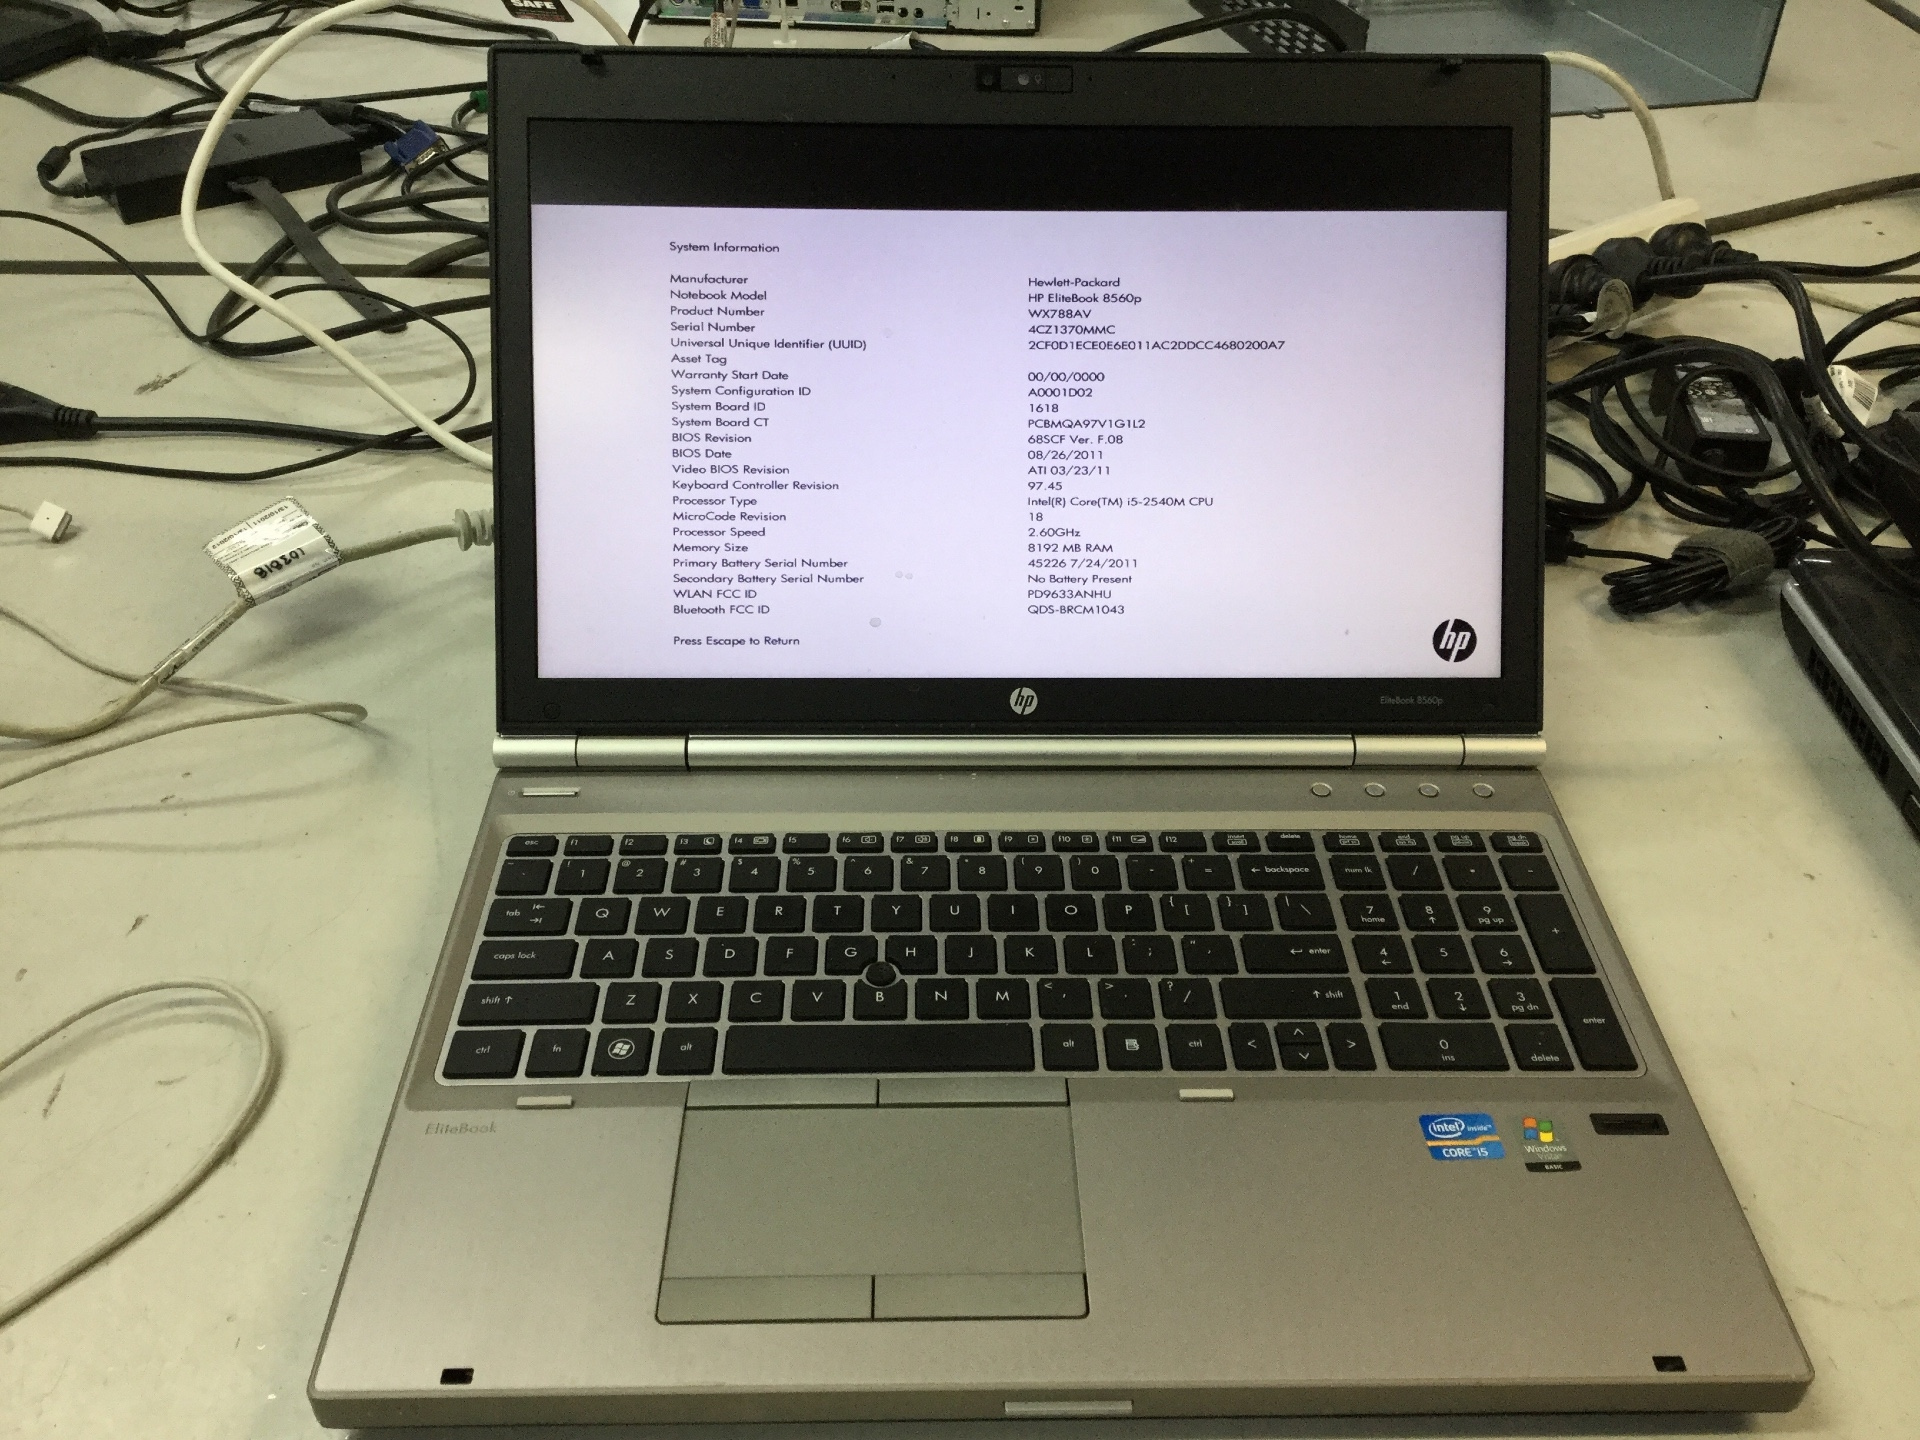 Laptop, HP EliteBook 8560P, BIOS Locked, No Charger, Appears to